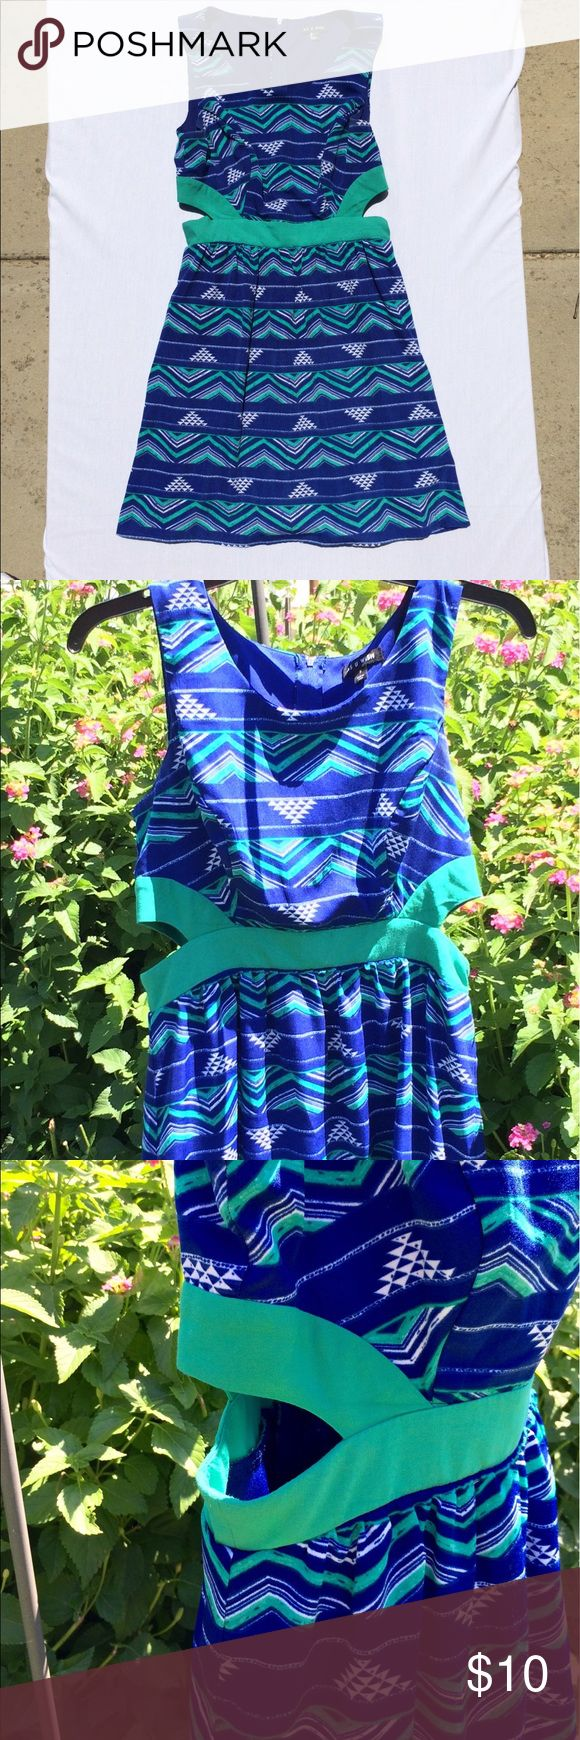 Sassy Open Side Chevron Pattern Dress Cute blue and green chevrons with open waist As You Wish Dresses